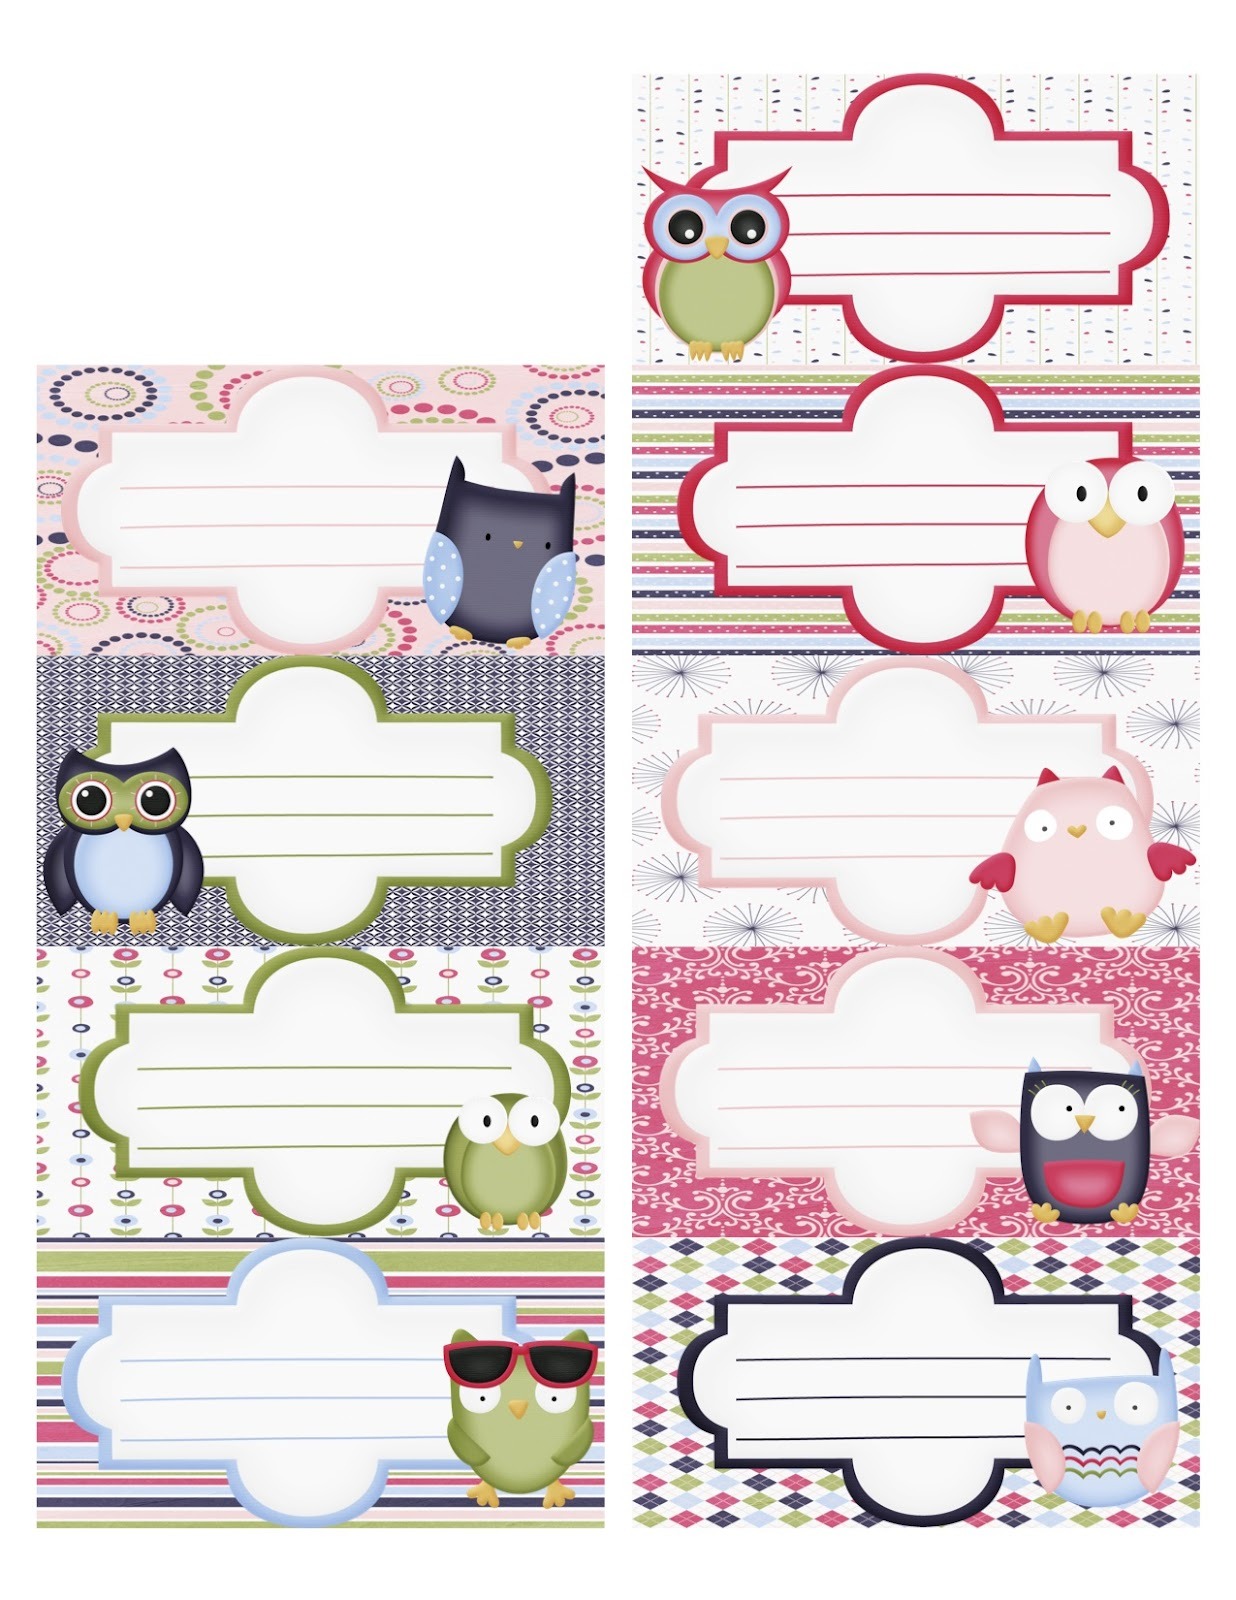 Avery 5163 Template | out-of-darkness